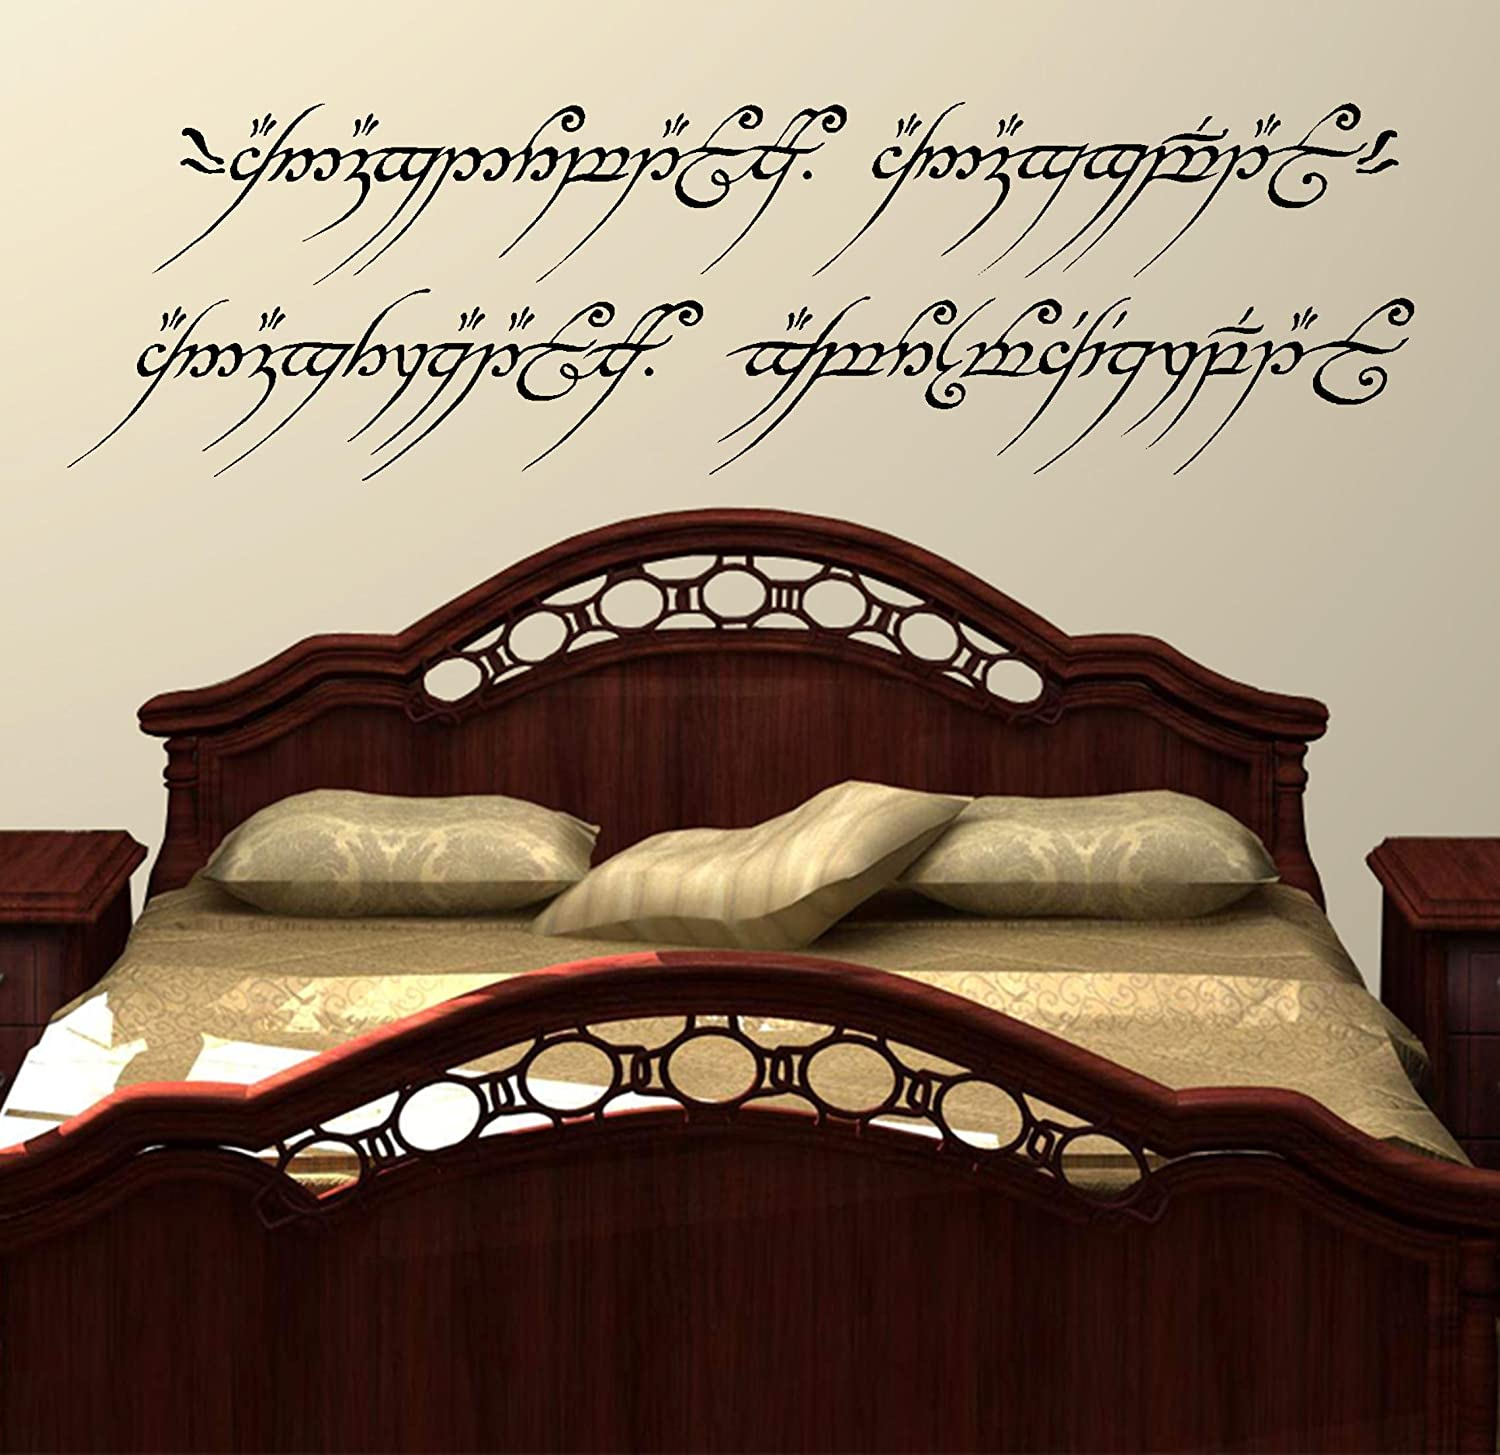 Lord of the rings wall art decal sticker one ring to rule them all lord of the rings wall art decal sticker one ring to rule them all elvish lotr medium 275cm h x 96cm w amazon kitchen home amipublicfo Choice Image